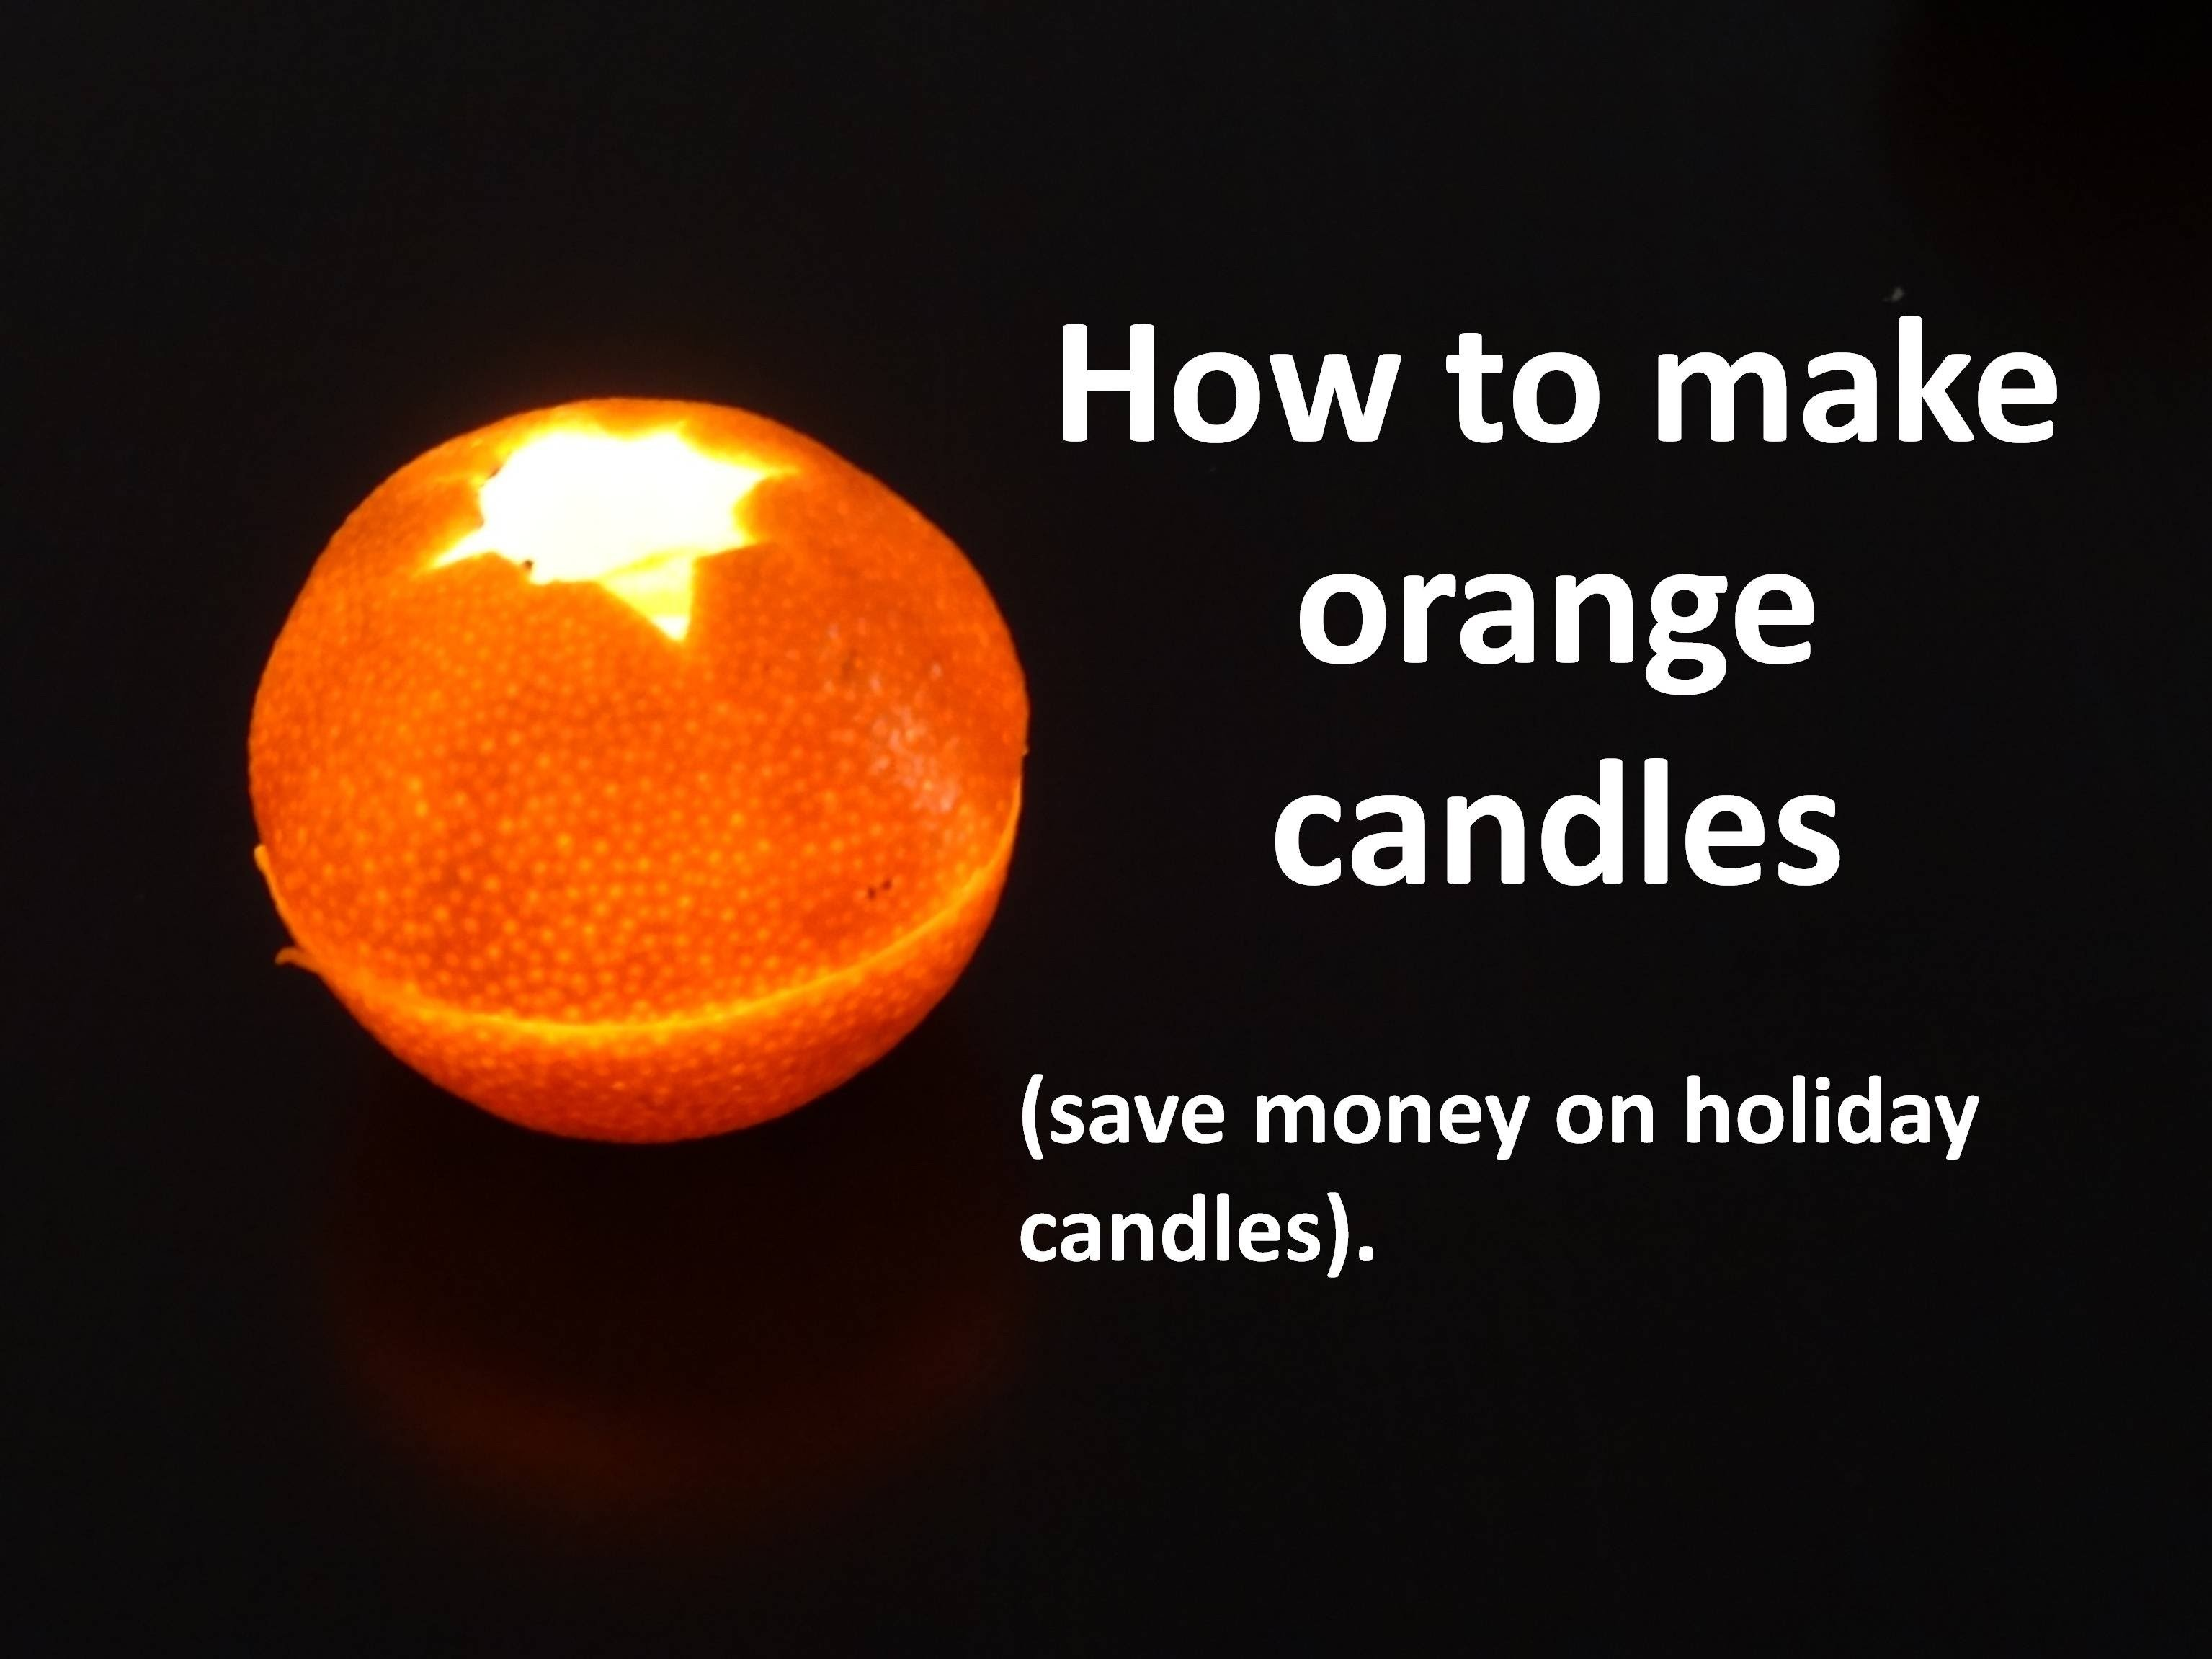 How to make orange candles (save money on holiday candles).